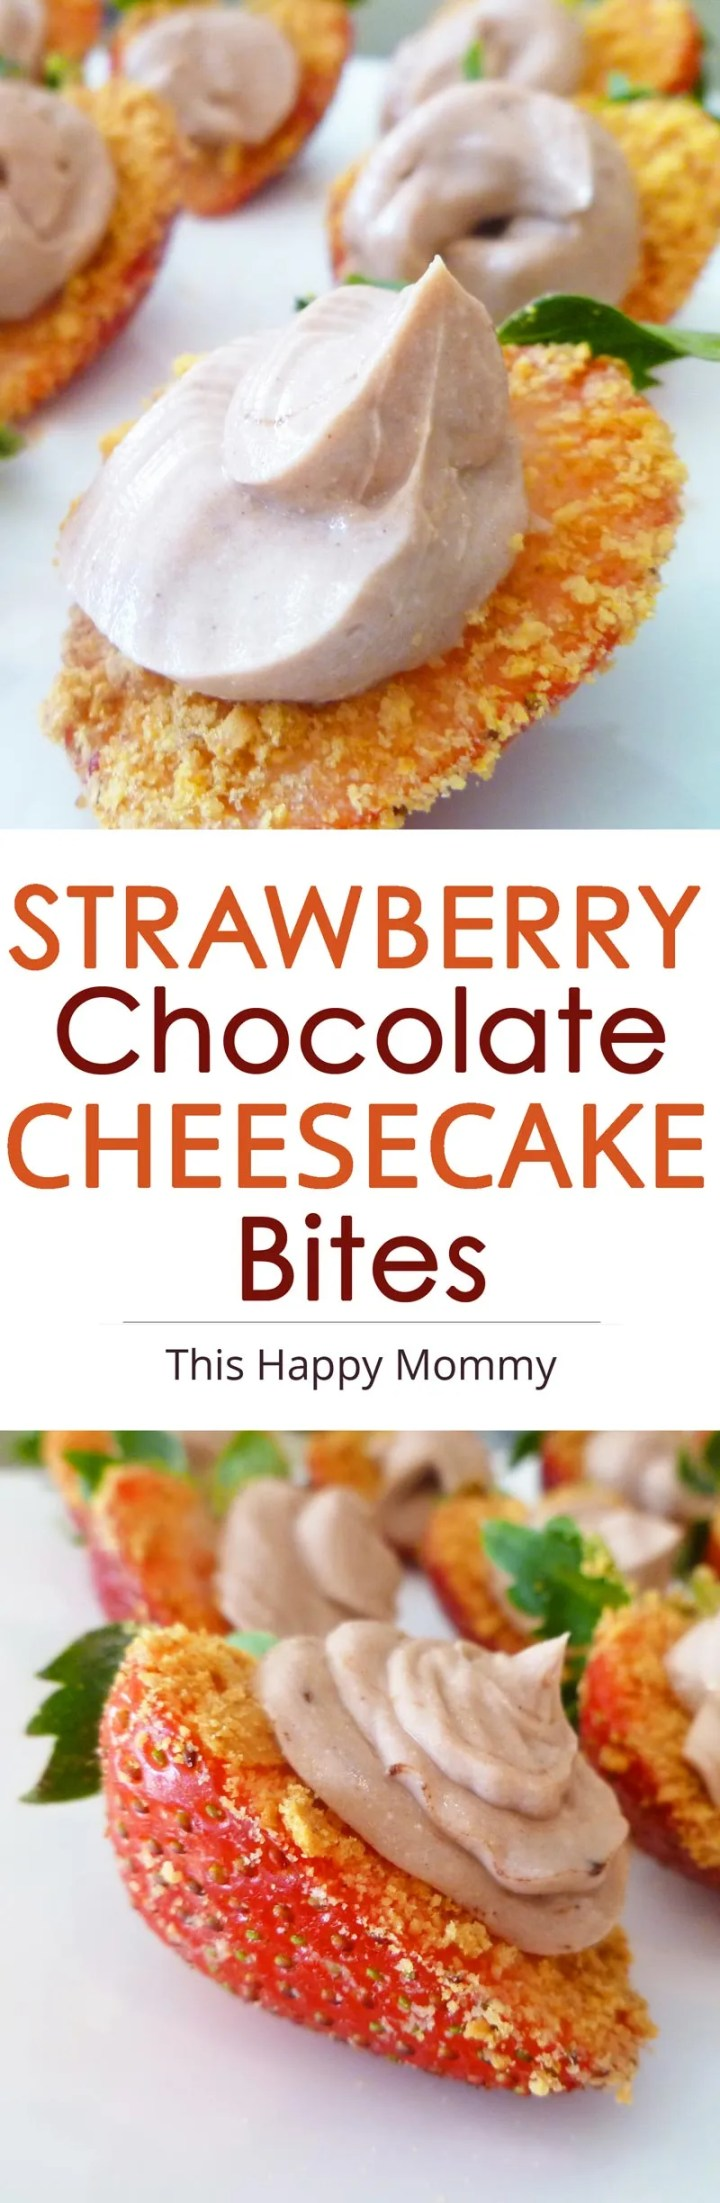 Strawberry Chocolate Cheesecake Bites -- The perfect summer dessert idea!! Strawberry bites covered with agraham cracker crust and a swirl of creamy chocolate cheesecake. #healthyrecipe #easydessert #minicheesecake   thishappymommy.com